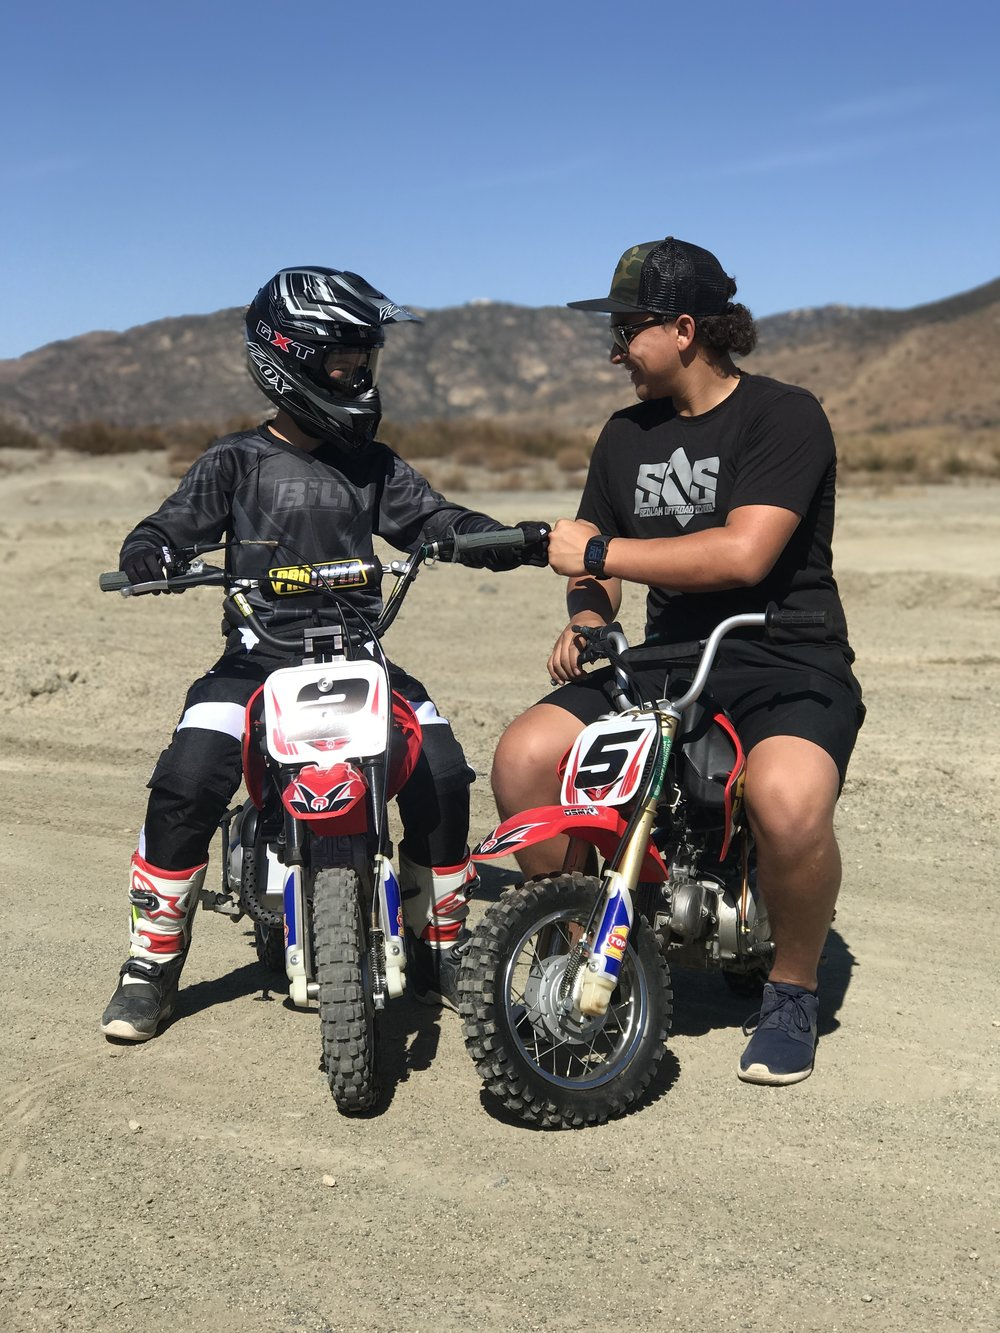 Learn to ride and control a dirt bike through our step by step introduction